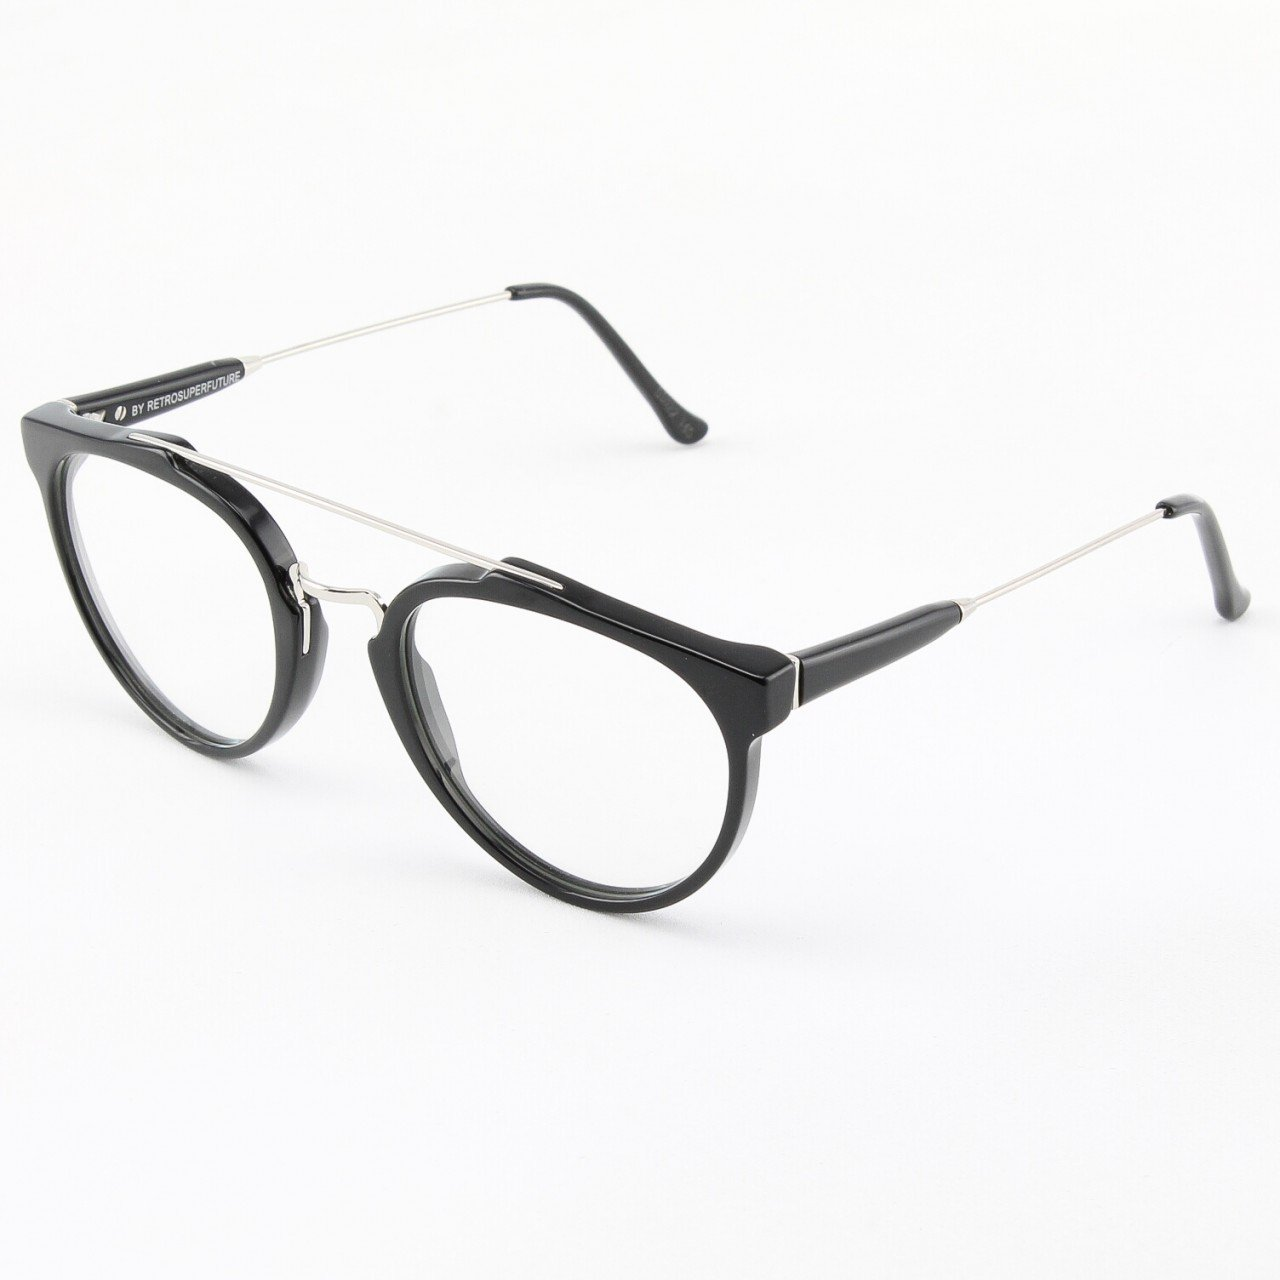 Super Giaguaro 618/0A Eyeglasses Silver with Clear Zeiss Lenses by RETROSUPERFUTURE